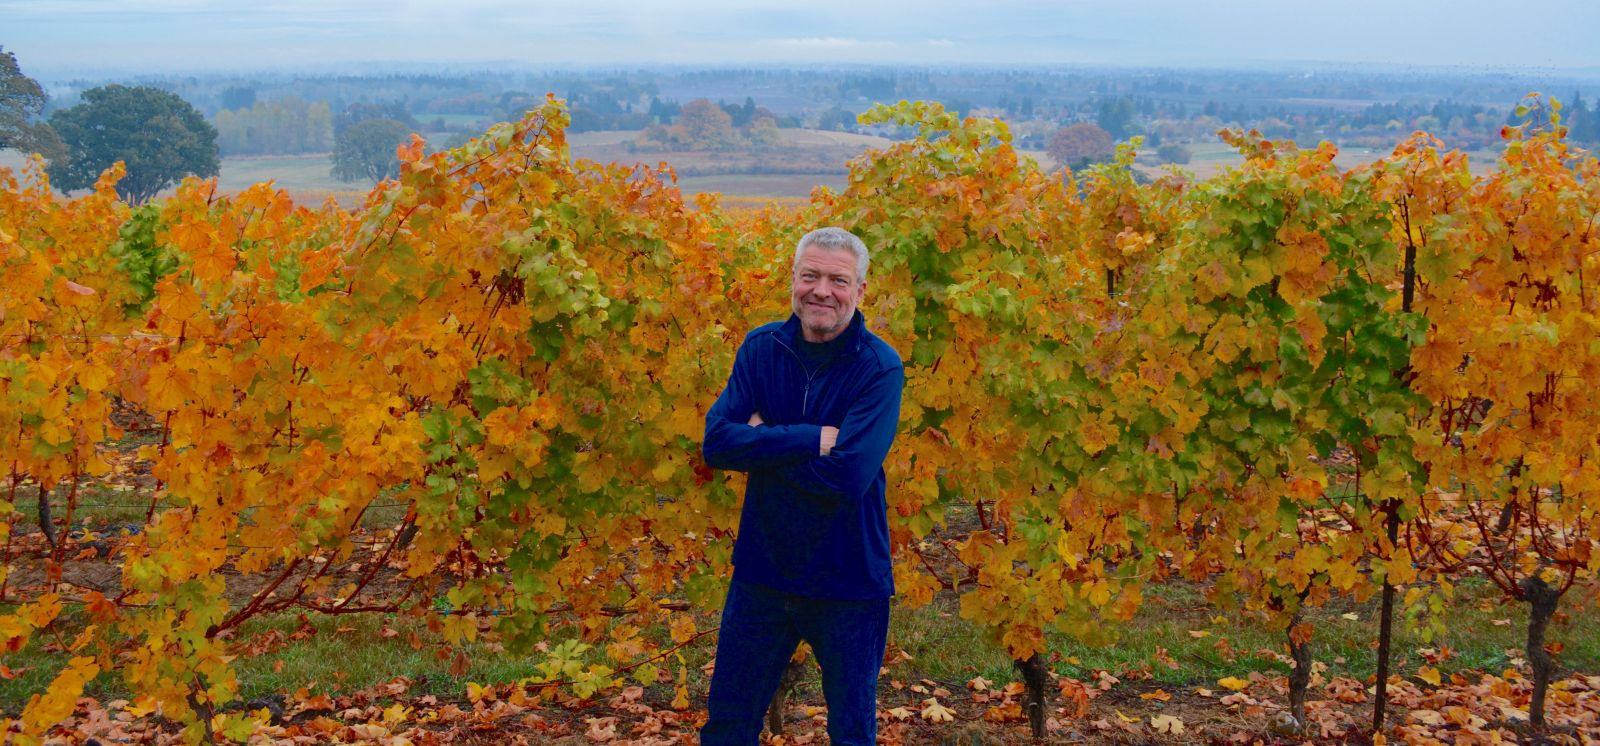 john-pataccoli-redhawk-winery-oregon